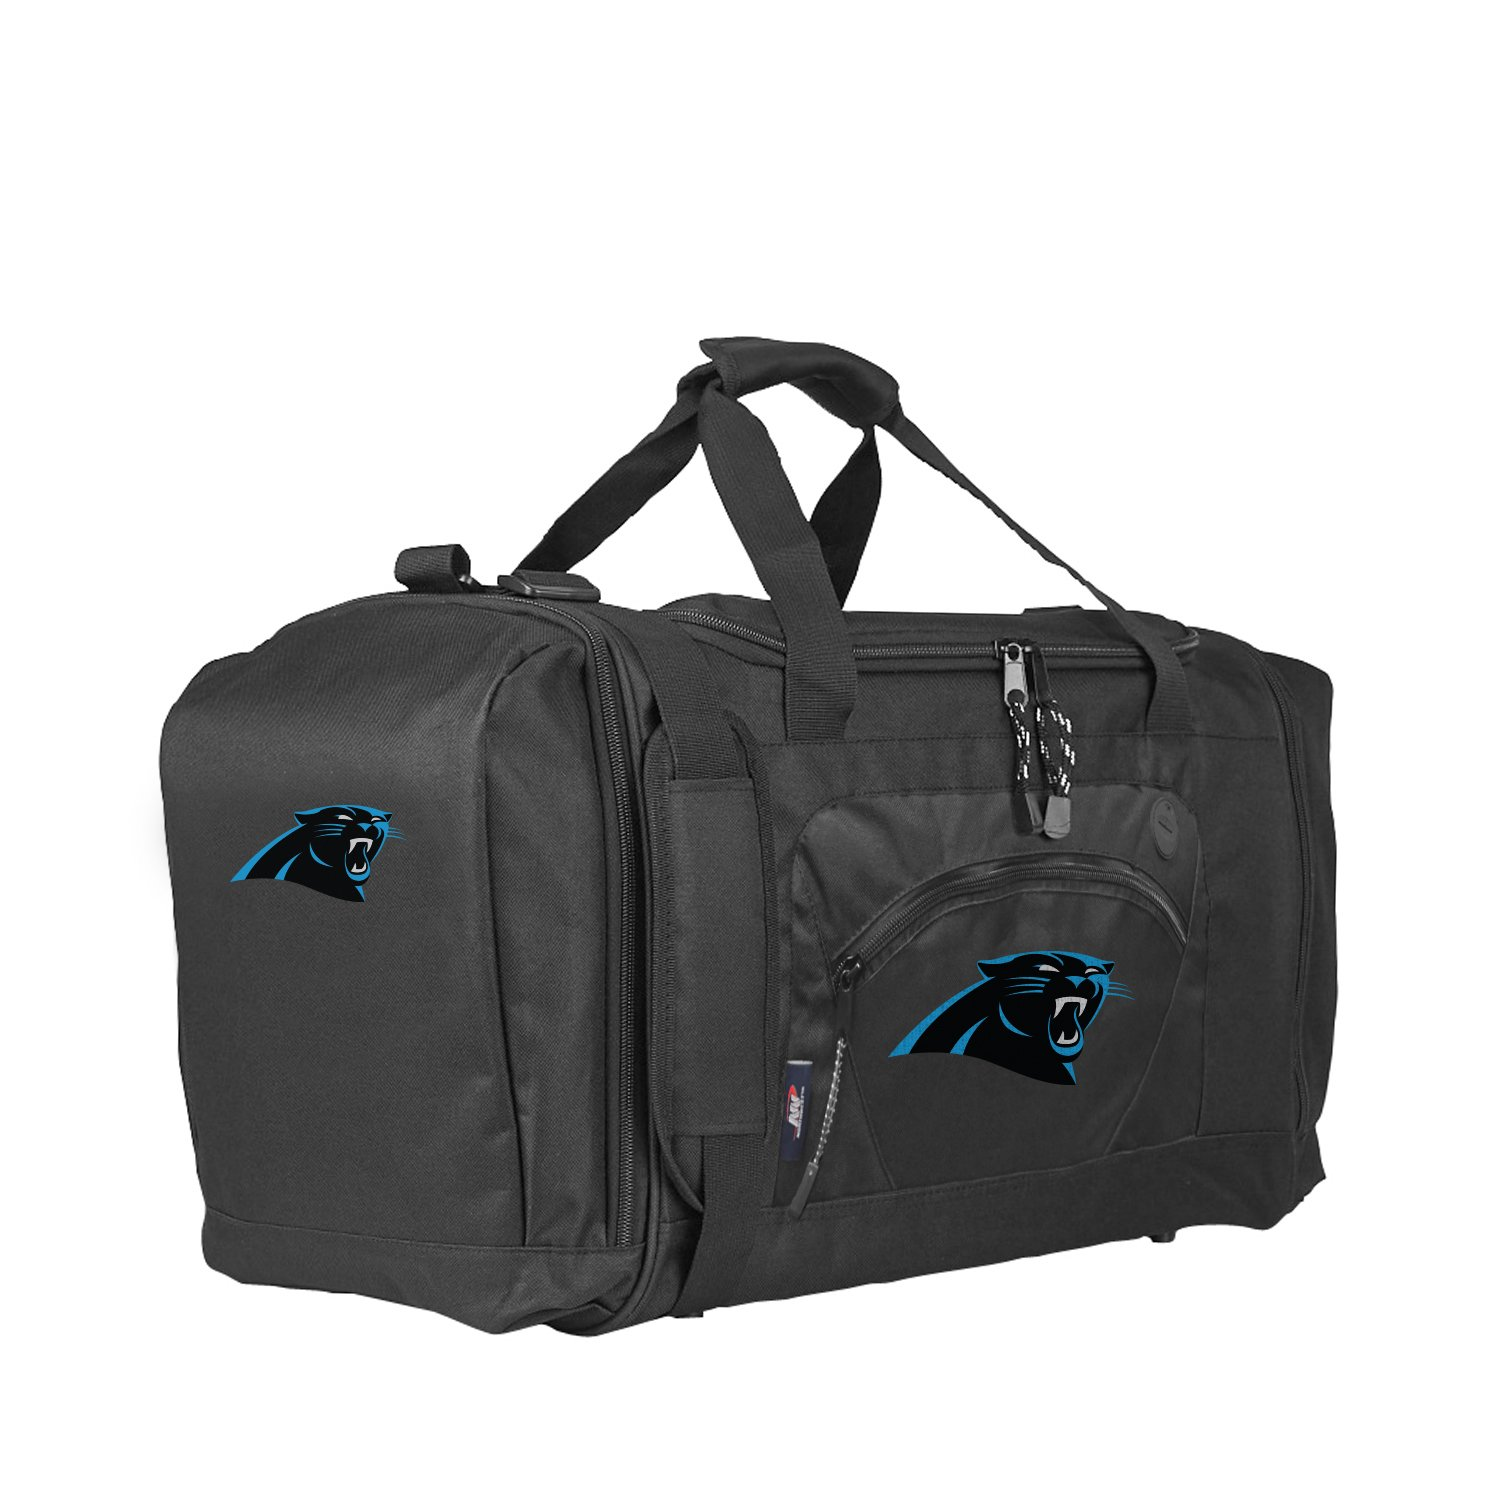 The Northwest Company Officially Licensed NFL Carolina Panthers Unisex Roadblock Duffel Bag, Black